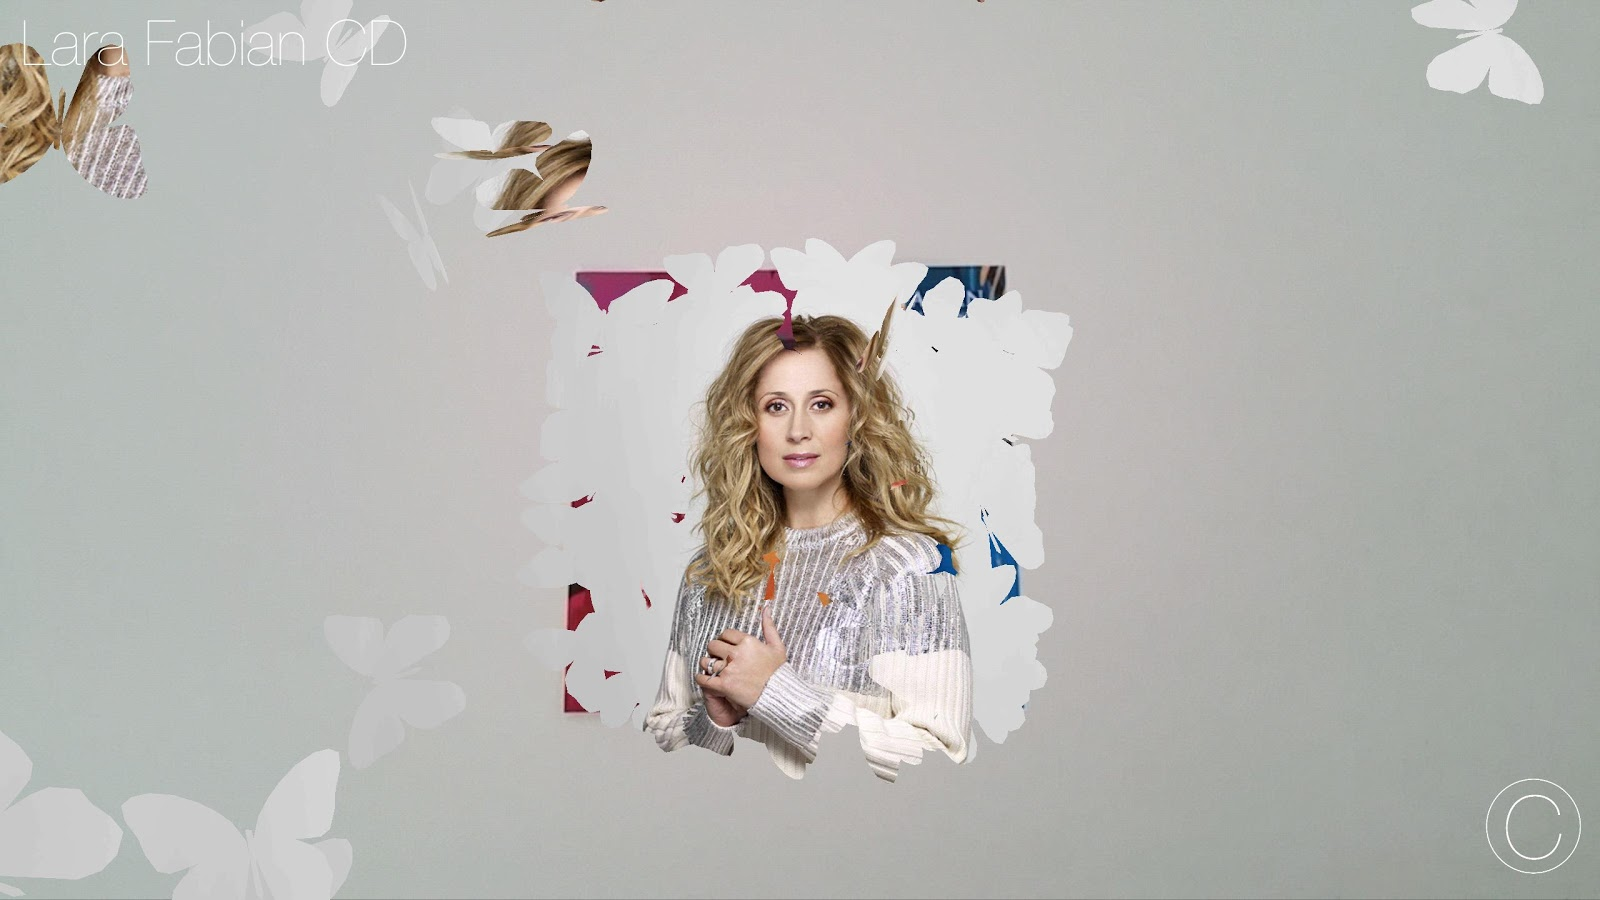 Lara Fabian - CD – Capture d'écran